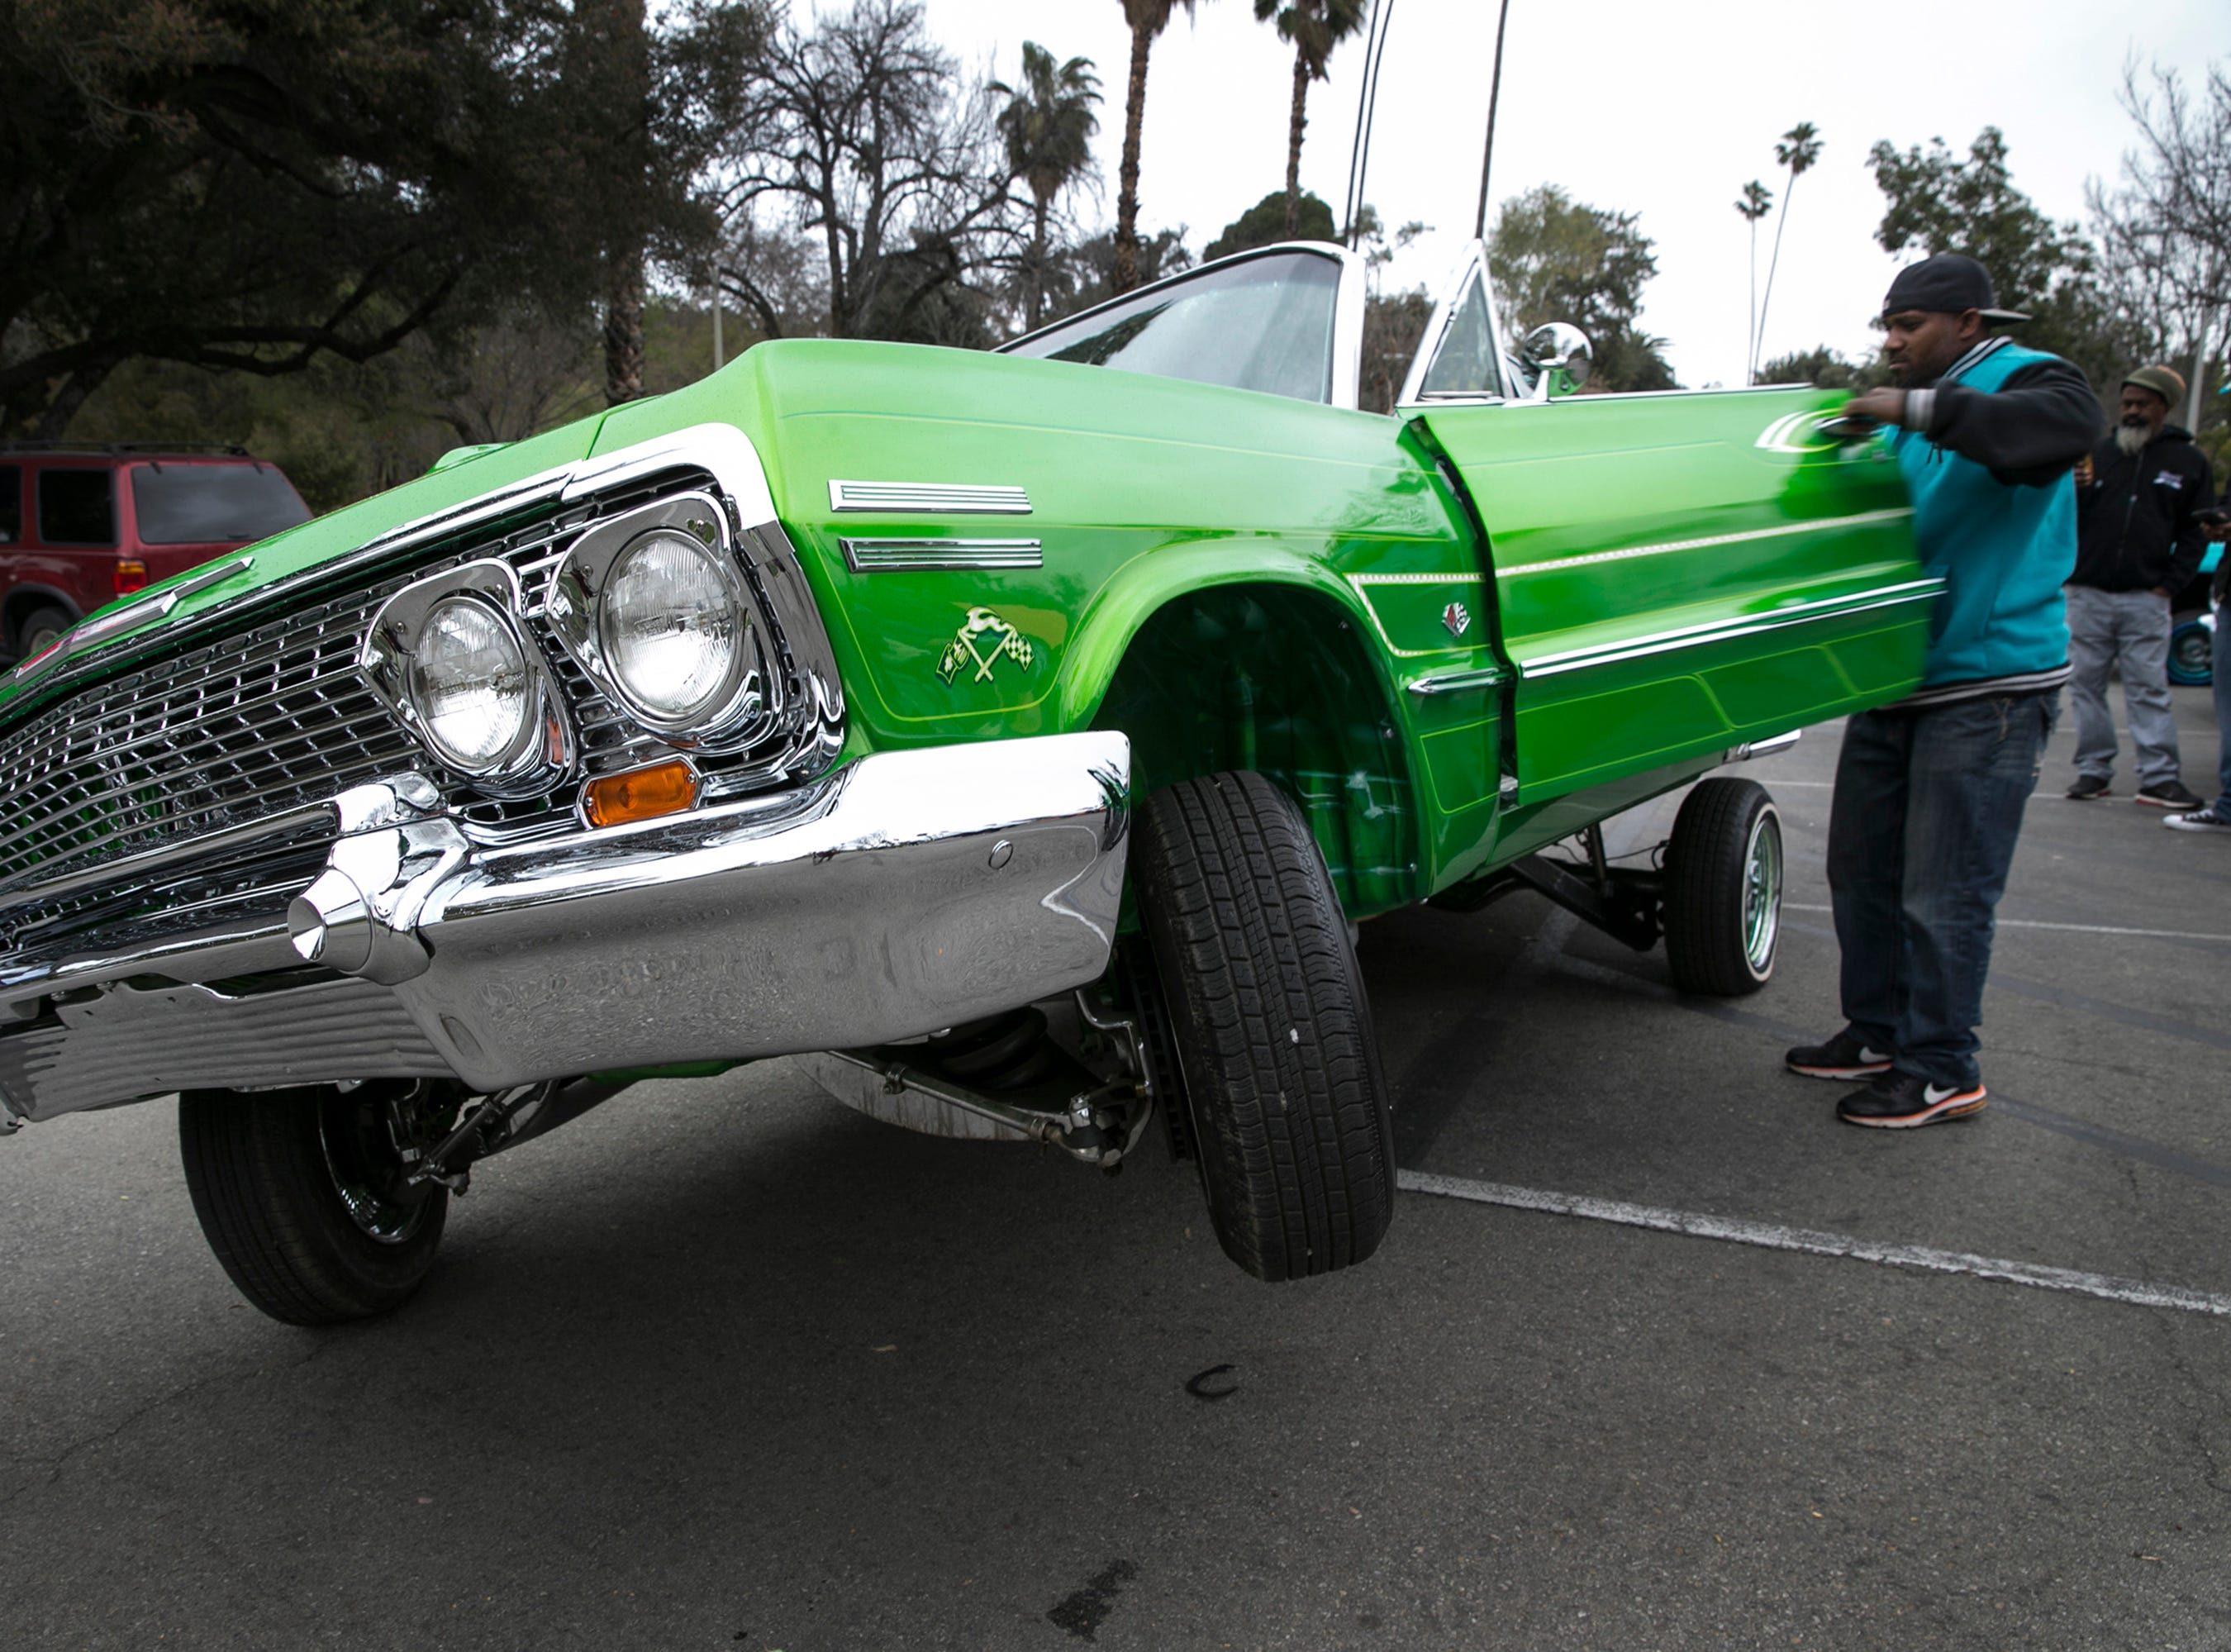 A modified 1963 Chevy Impala during the Ultimate Riders Car Club at Fairmount Park  in Riverside, Calif, March 5, 2017